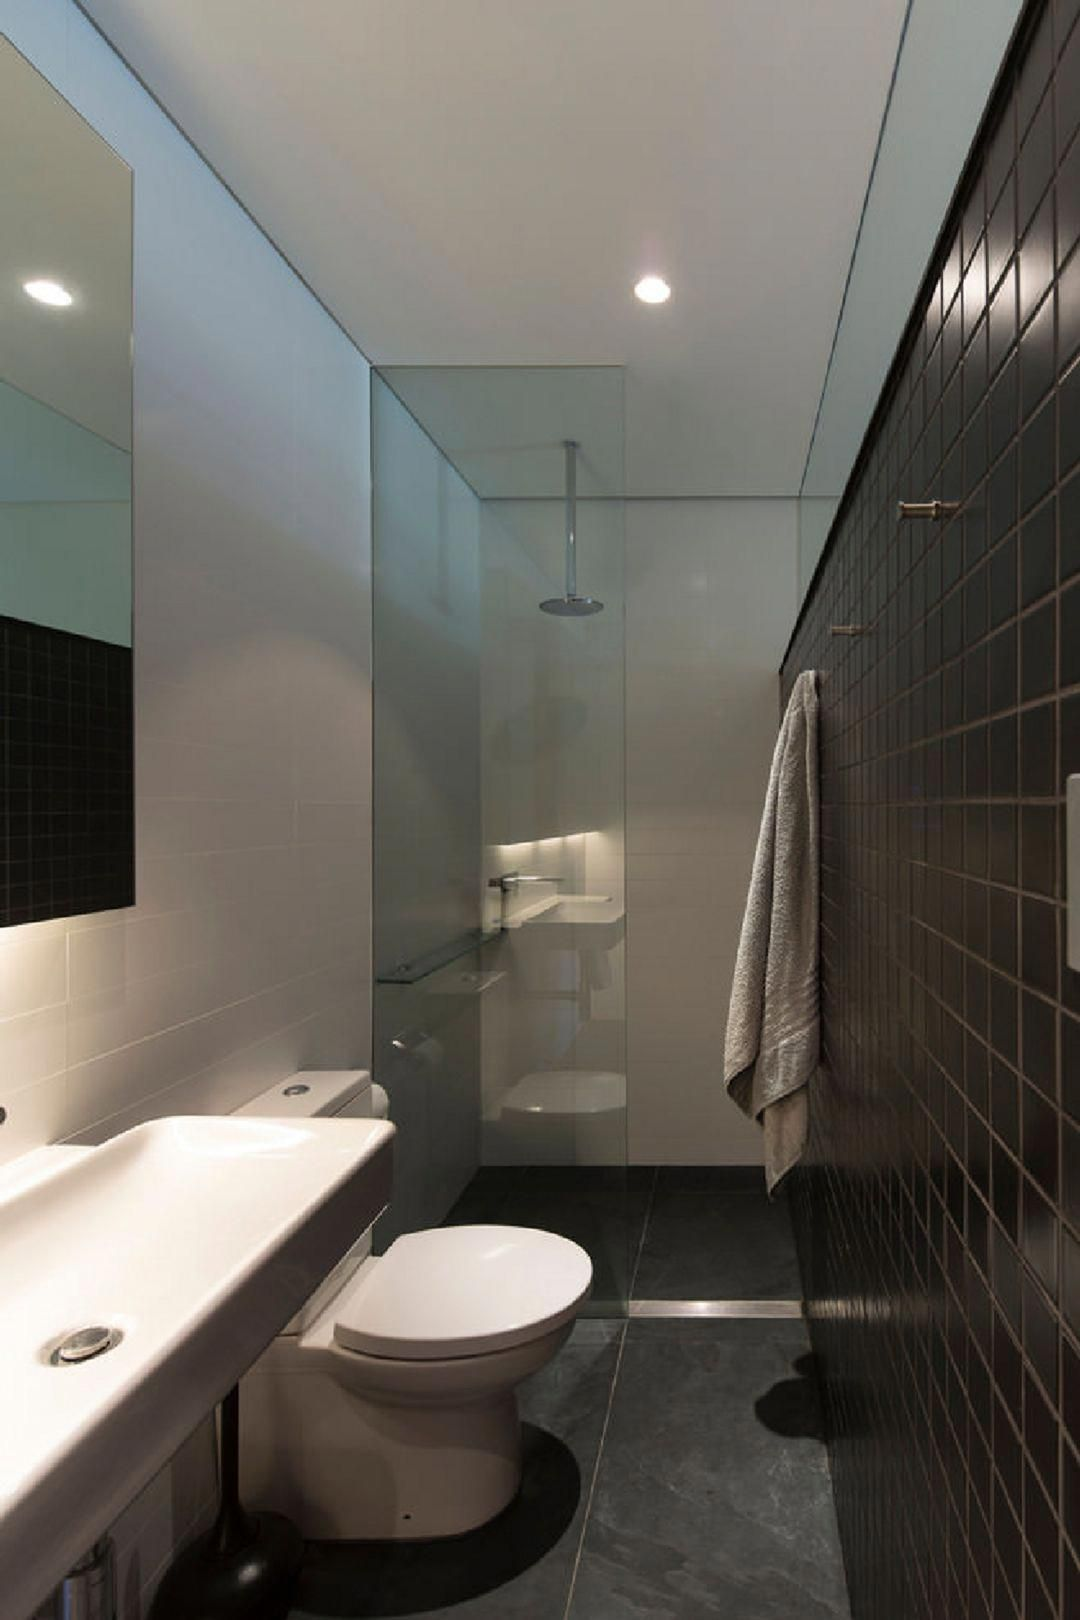 Check Out This Important Picture And Look Into Today Details On Bathroom Decor Diy Badezimmer Klein Badezimmer Renovieren Schmales Badezimmer